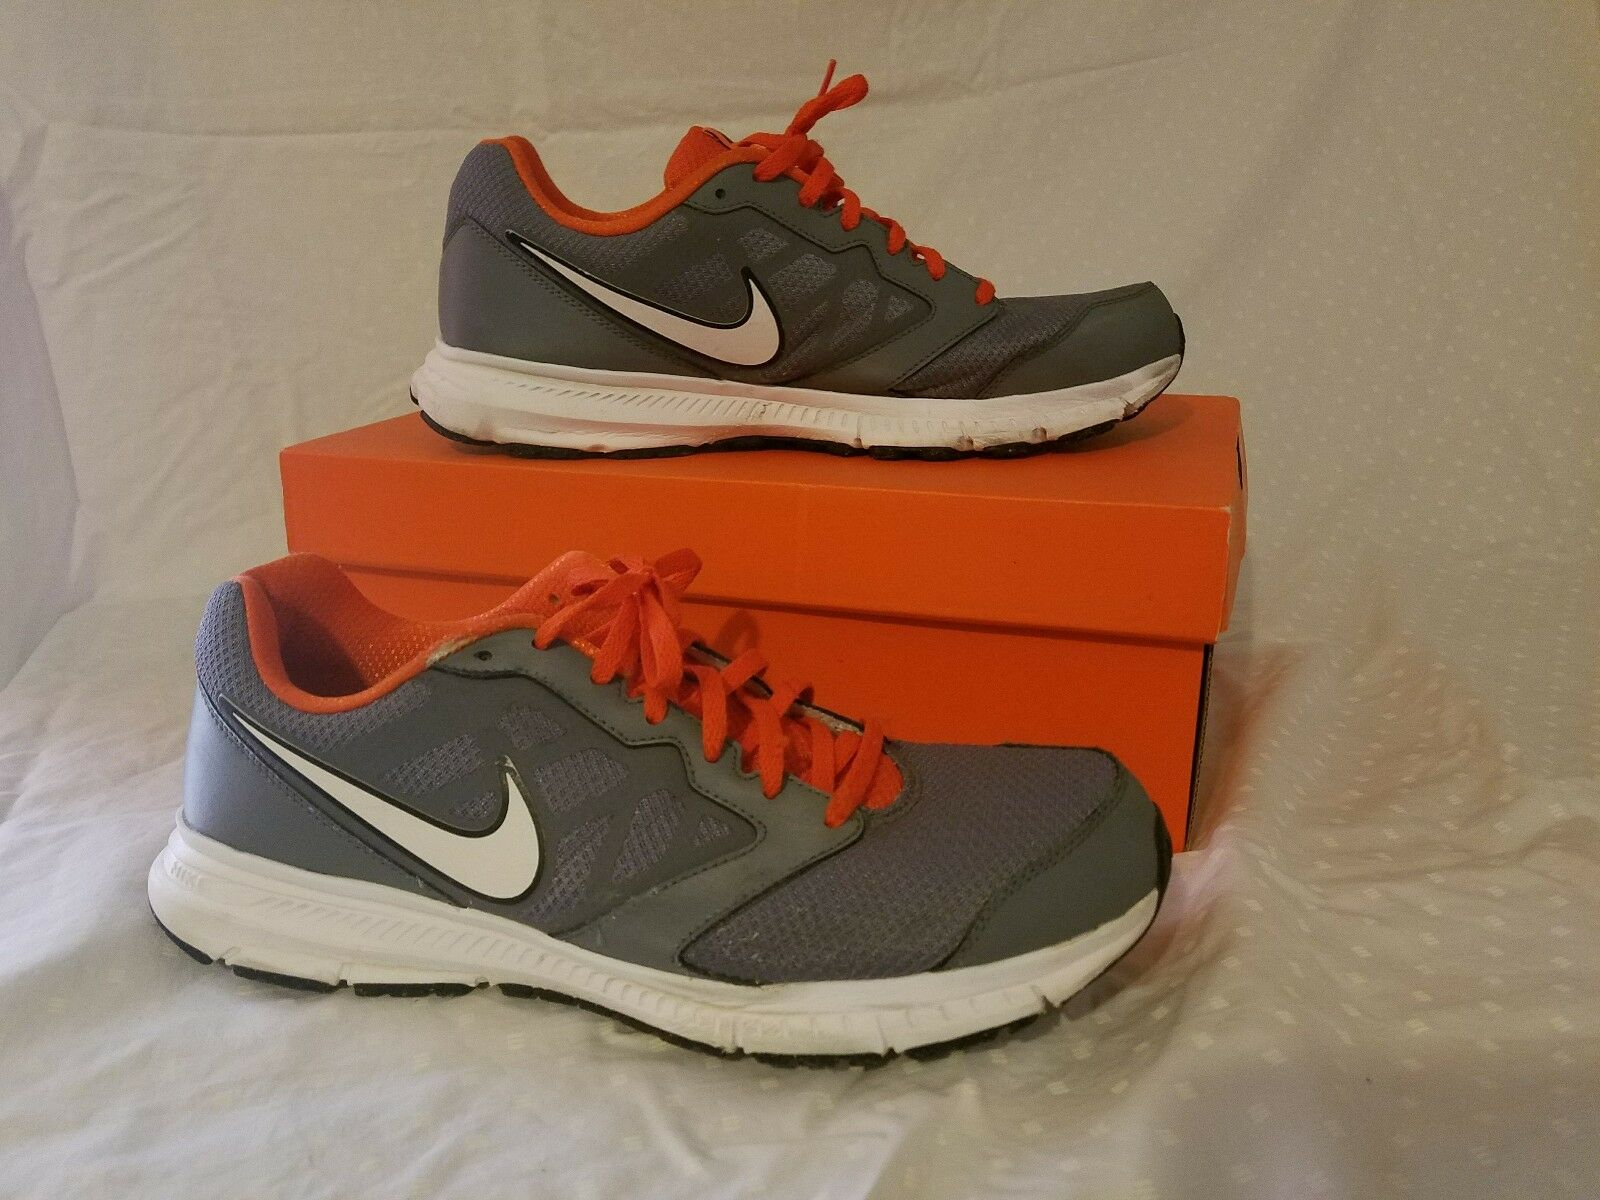 MEN'S NIKE DOWNSHIFTER 6 RUNNING SHOES!!! IN GRAY ORANGE BLACK WHITE!!! Special limited time